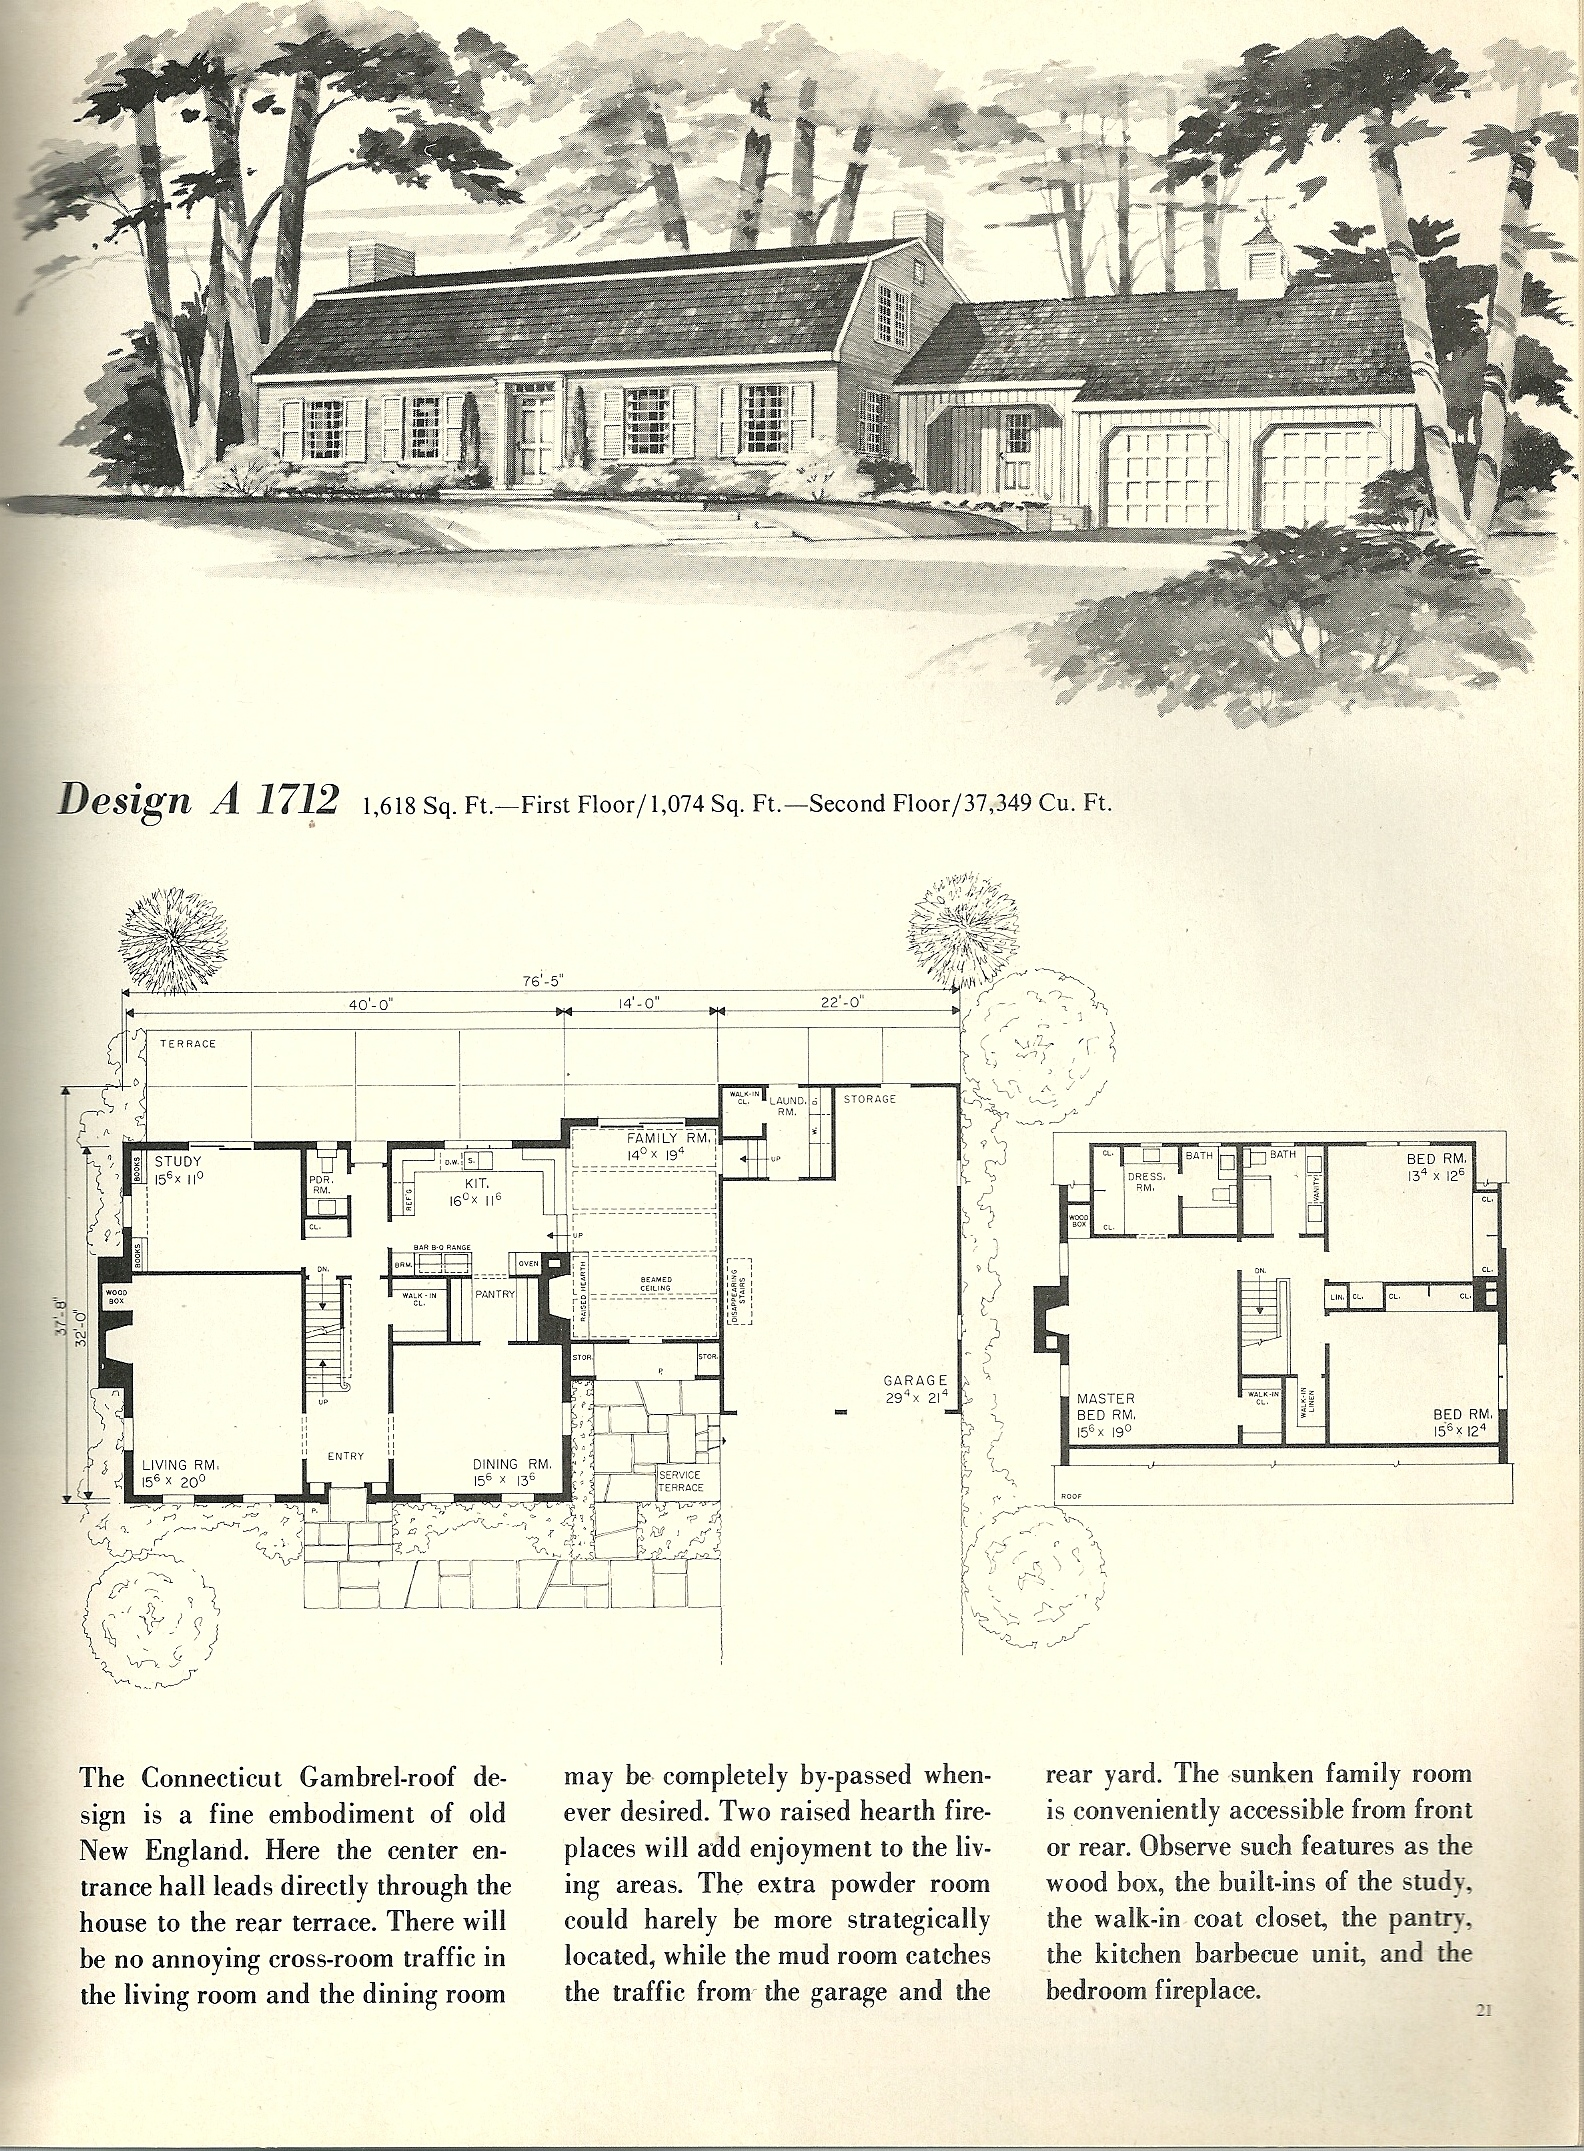 vintage house plans 1712 antique alter ego